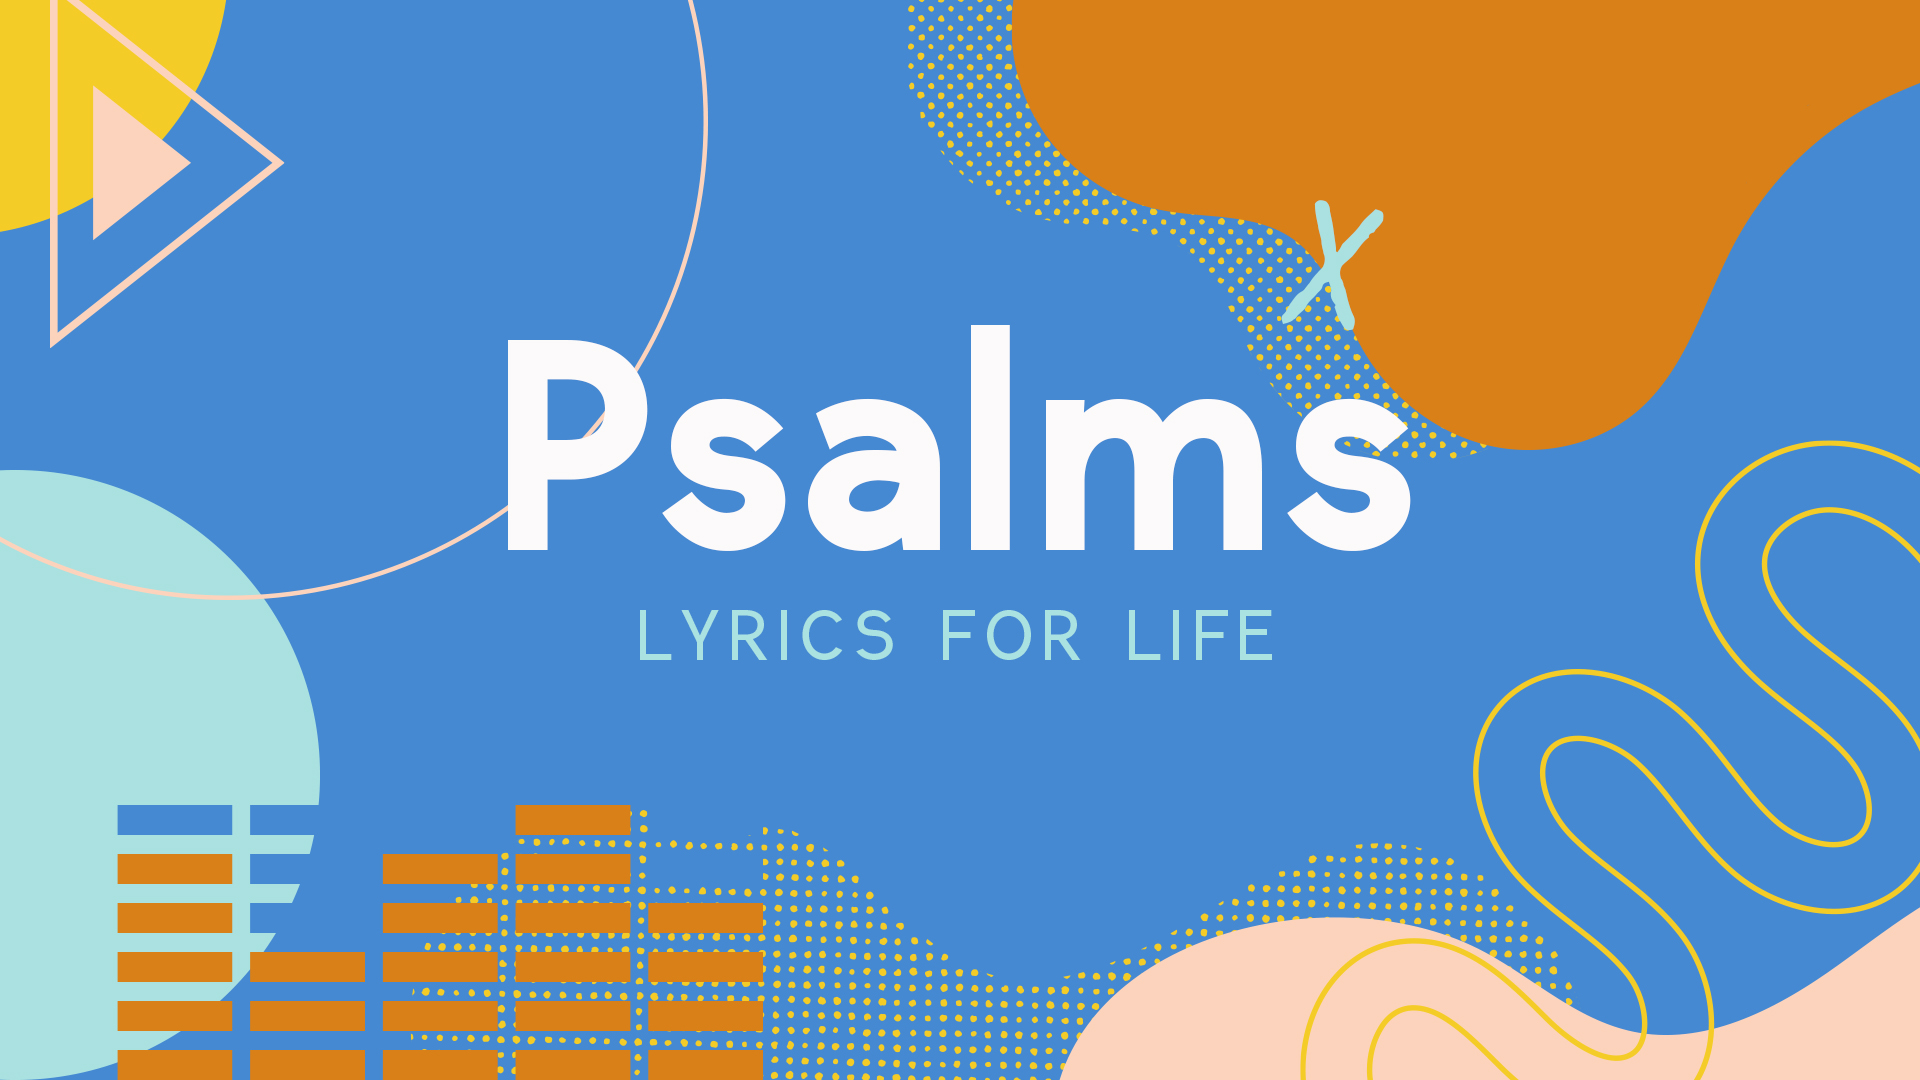 Psalms - Lyrics For Life